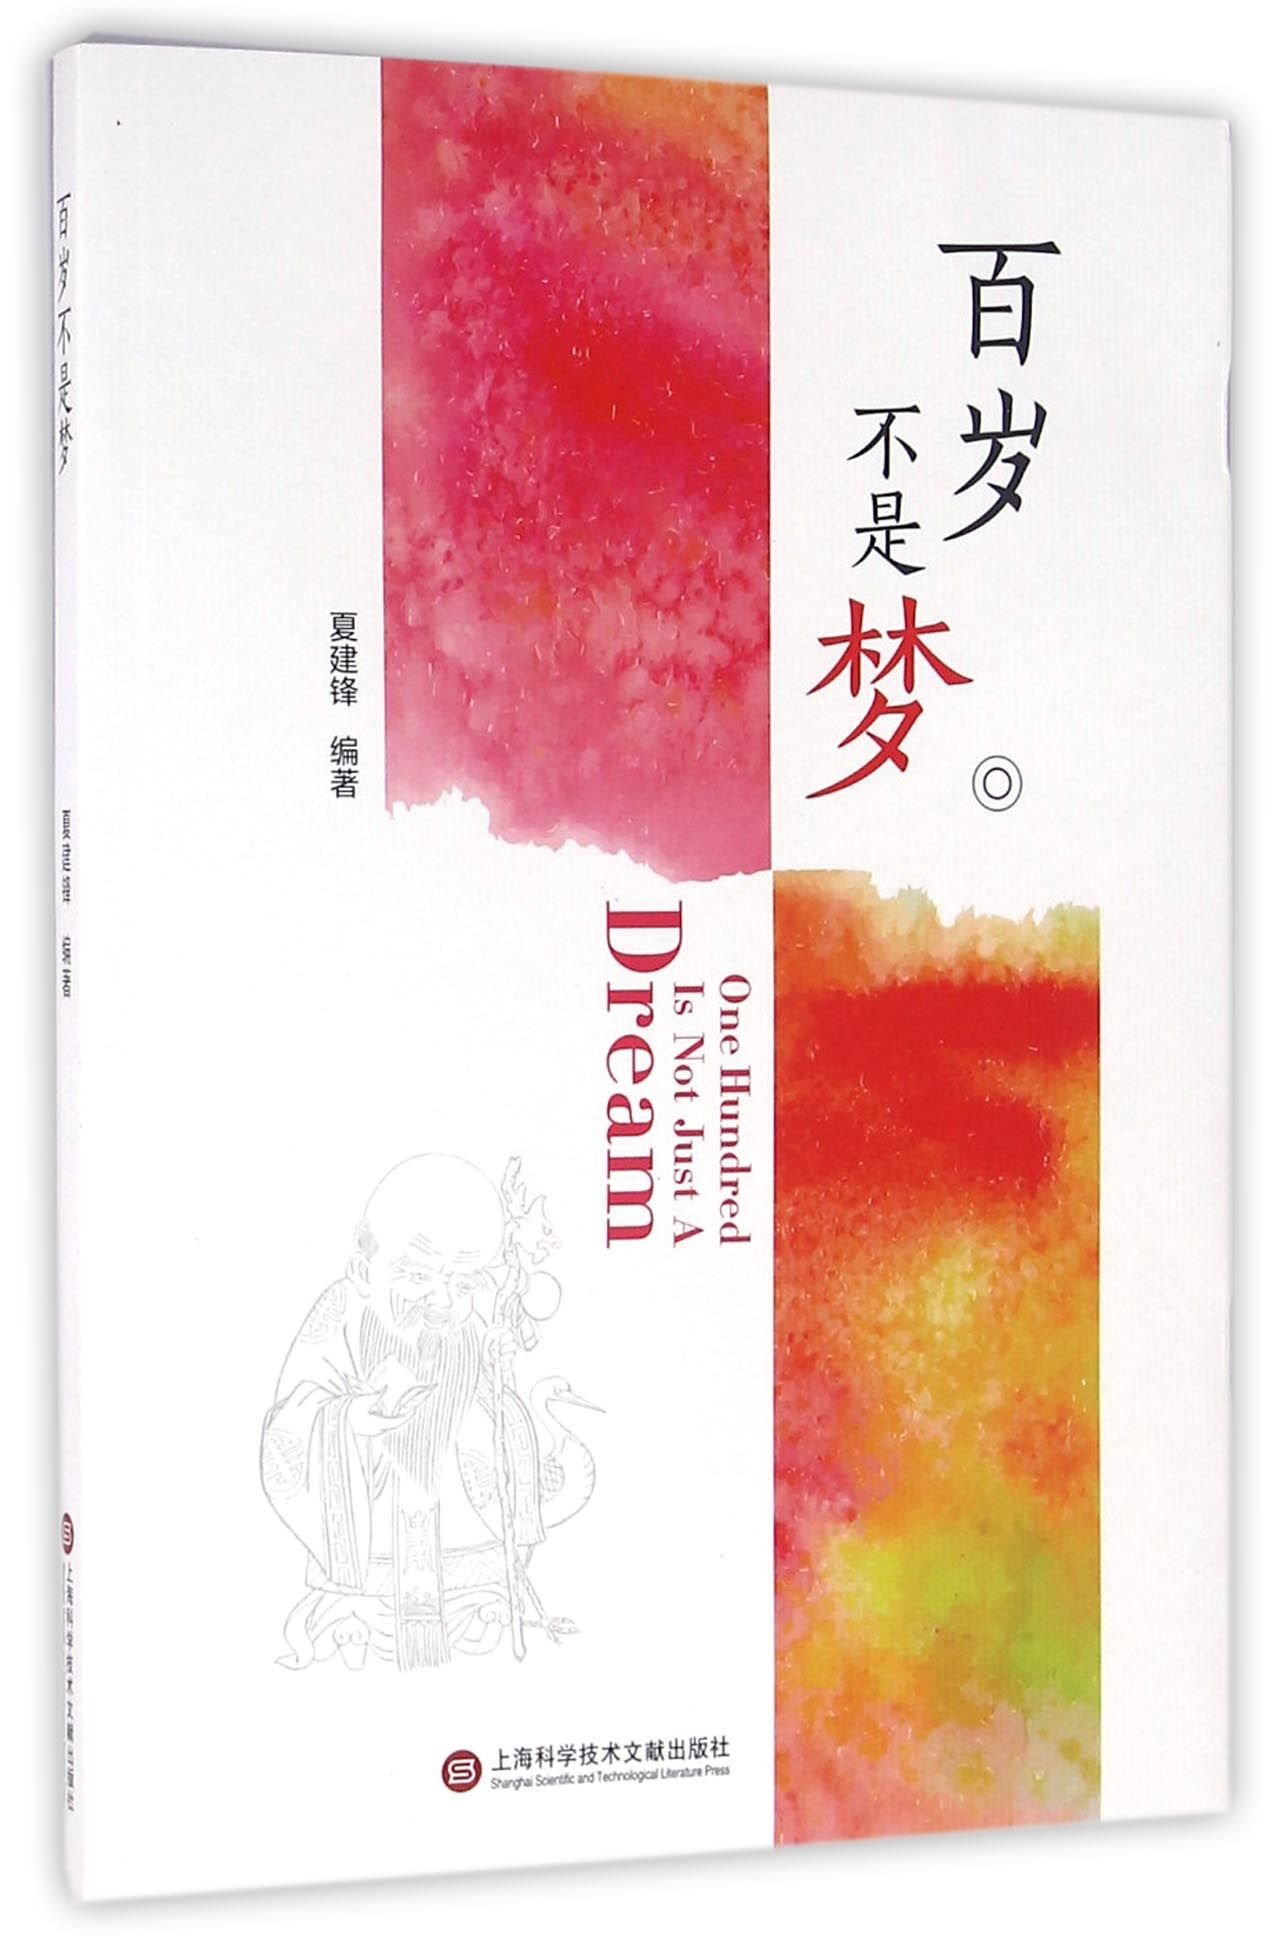 Read Online One Hundred is not Just a Dream (Chinese Edition) PDF